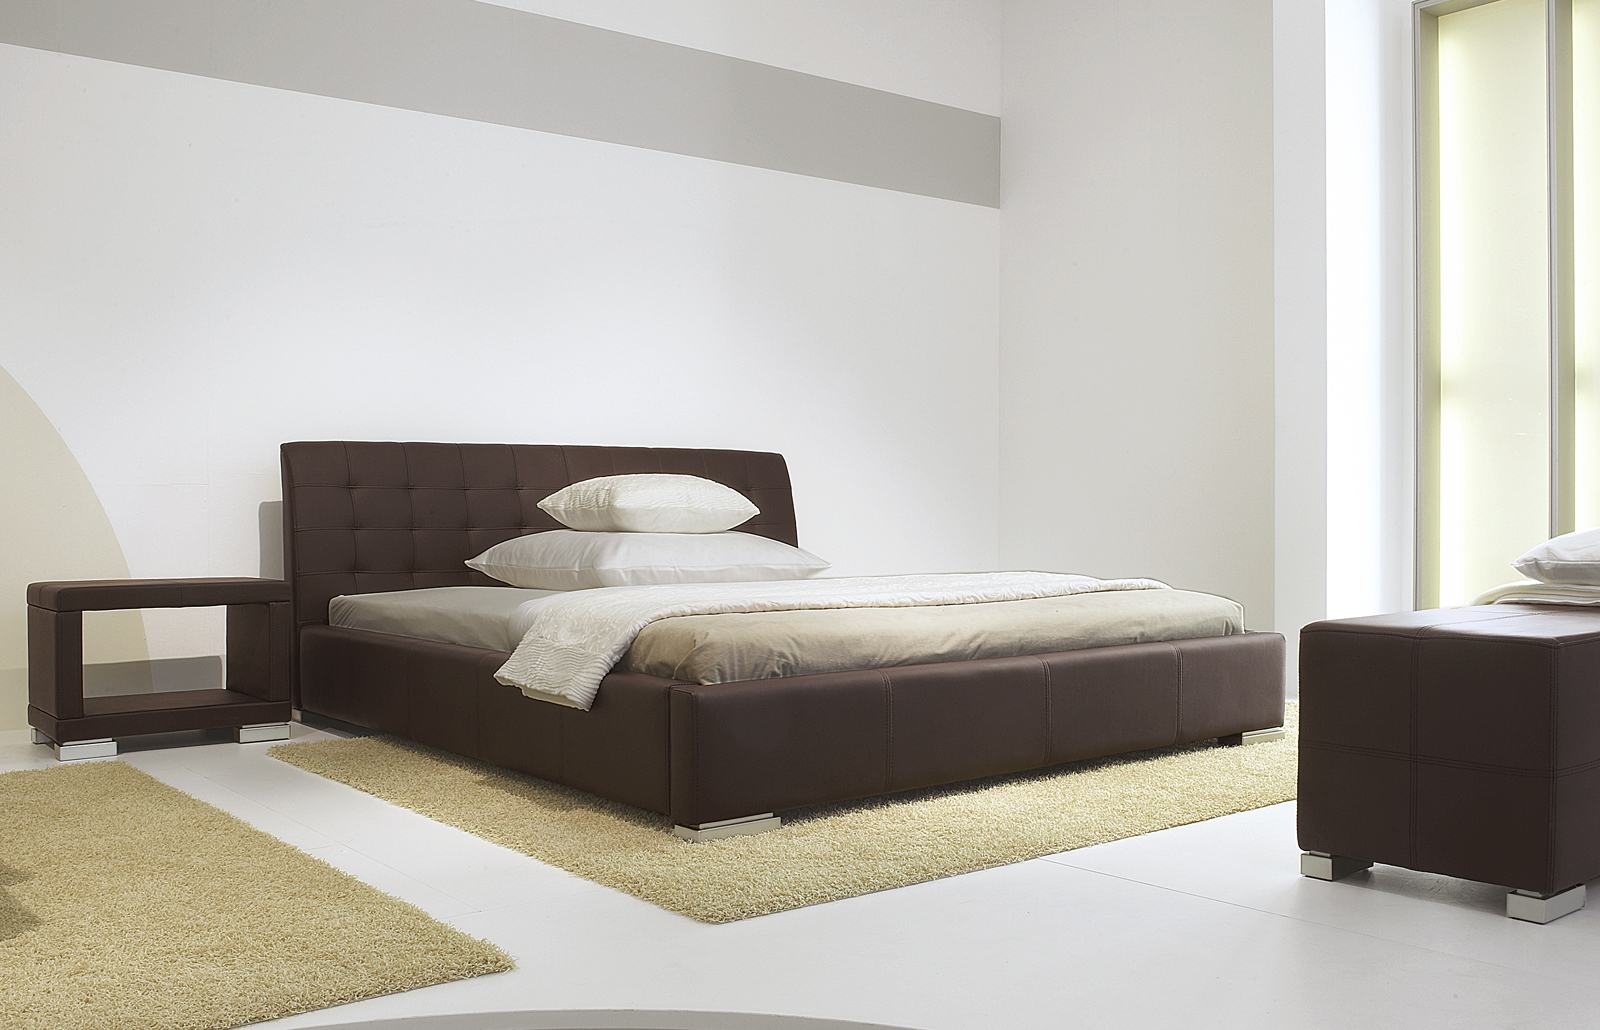 bett mit sehr hohem kopfteil. Black Bedroom Furniture Sets. Home Design Ideas